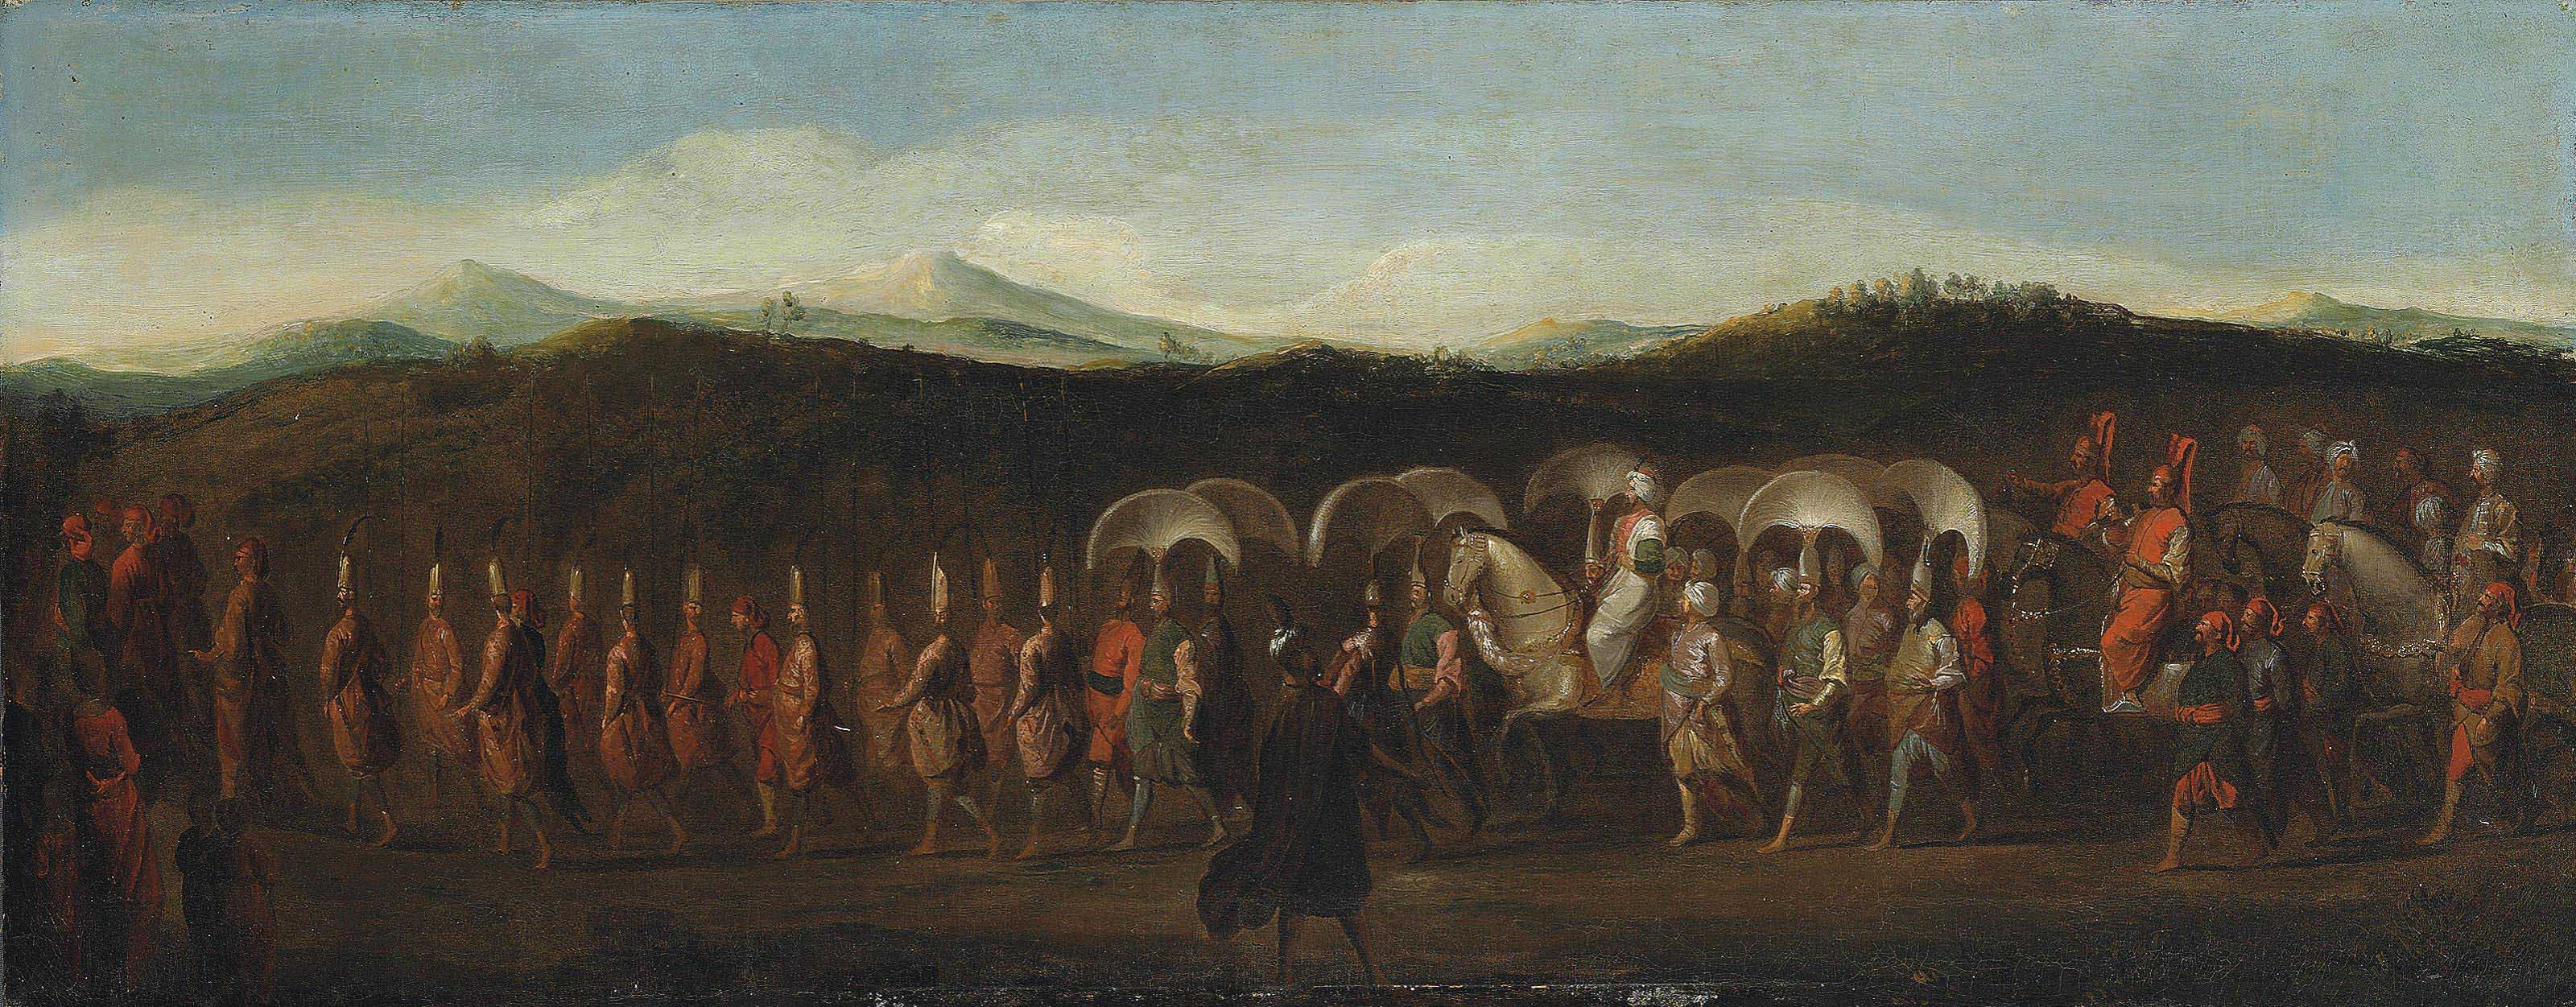 THE PROCESSION OF SULTAN AHMED